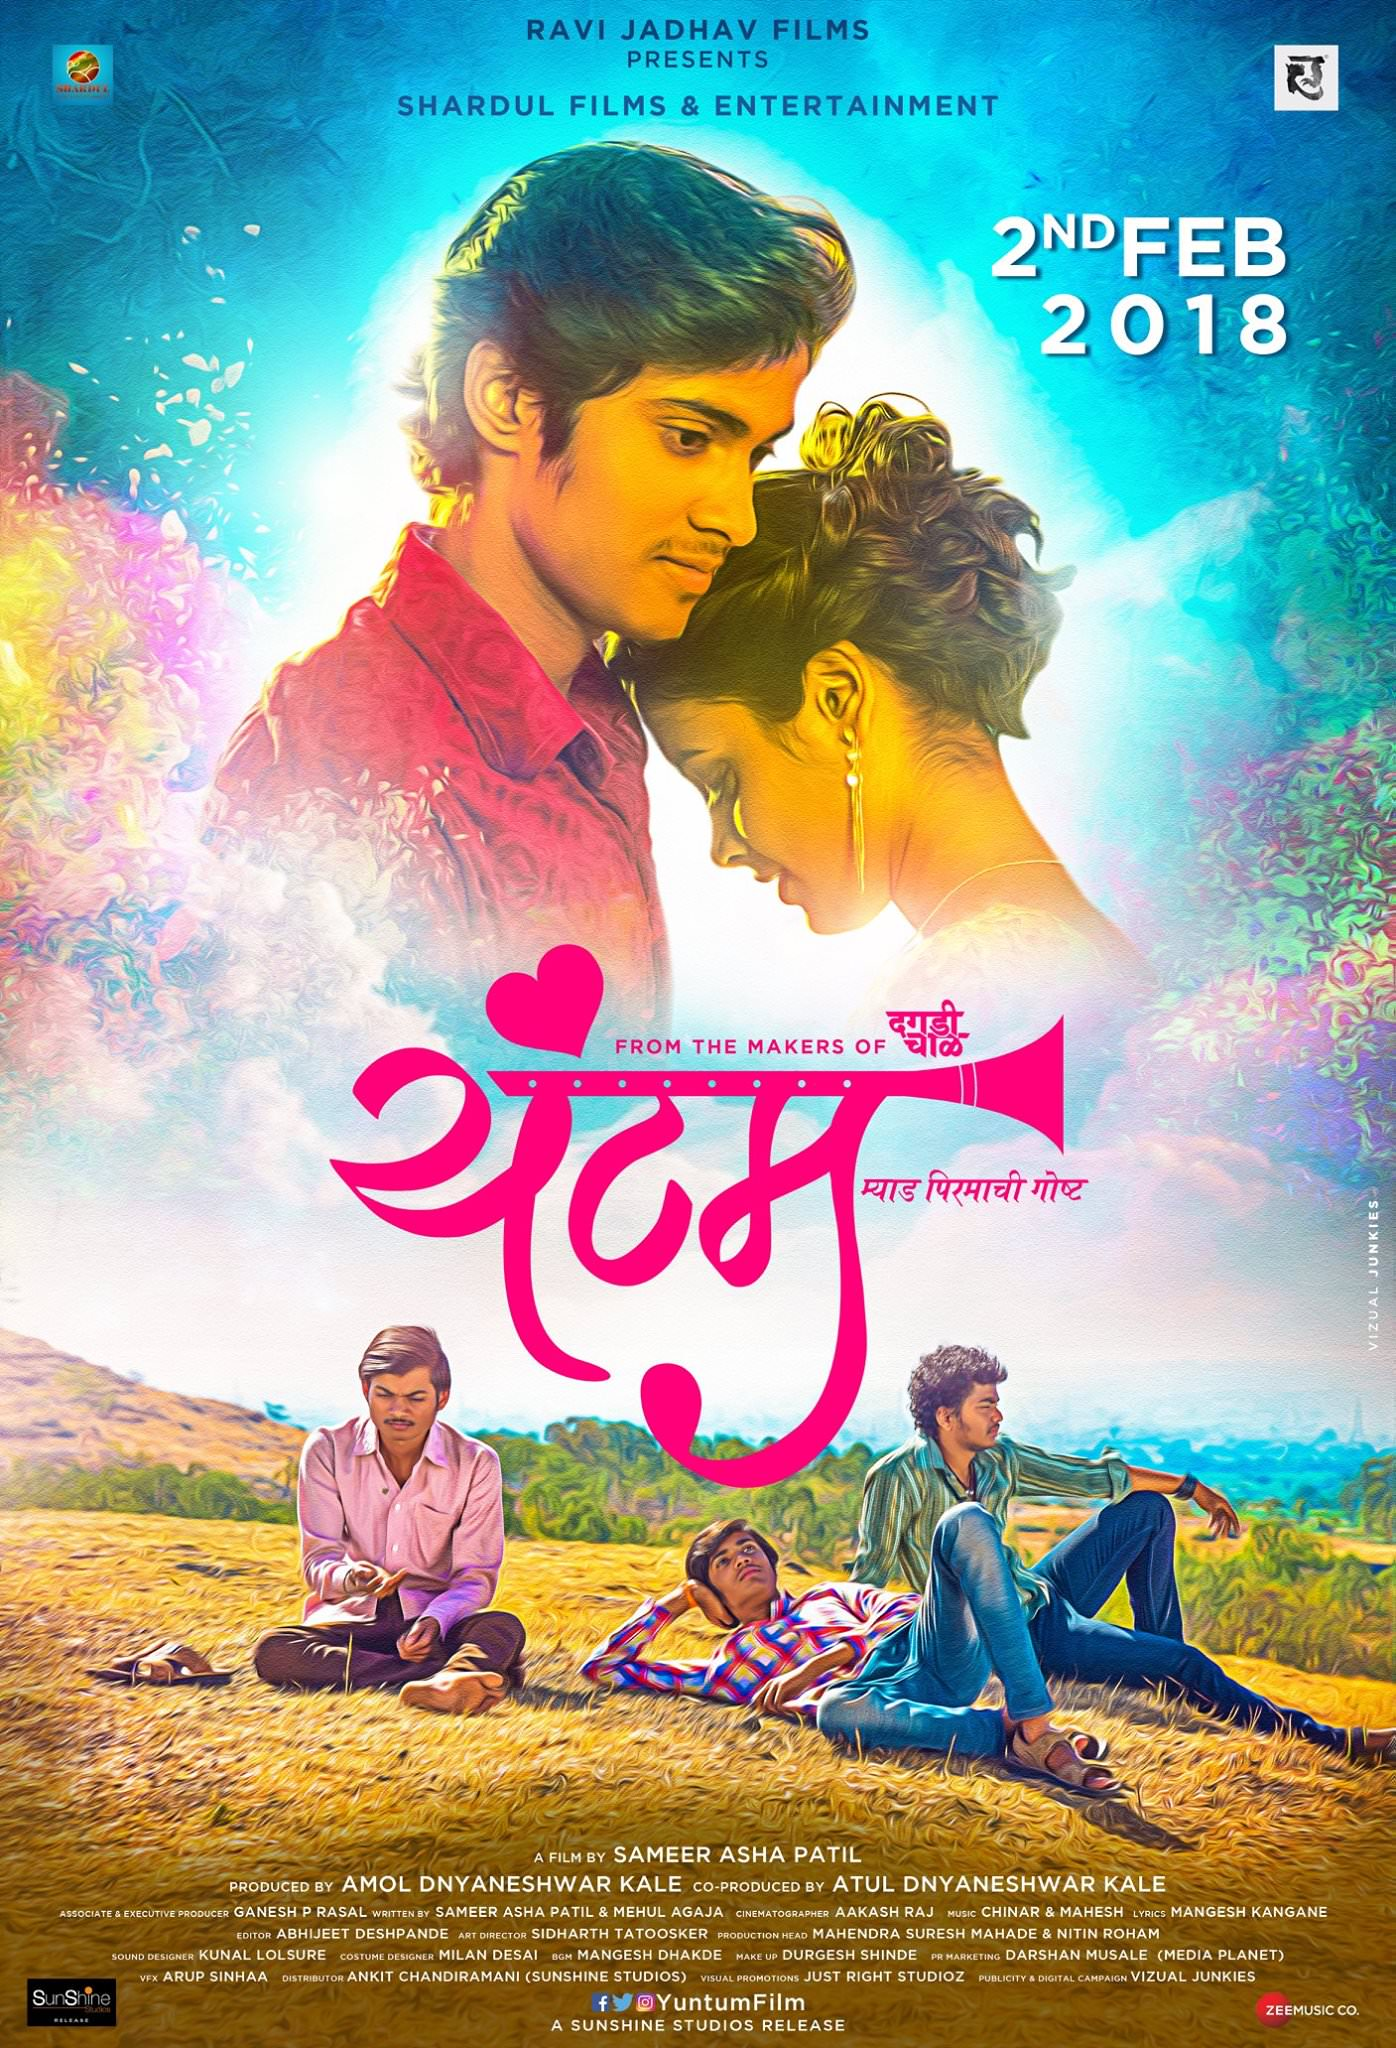 marathi movie poster movies trailer cast actress release actor marathistars official